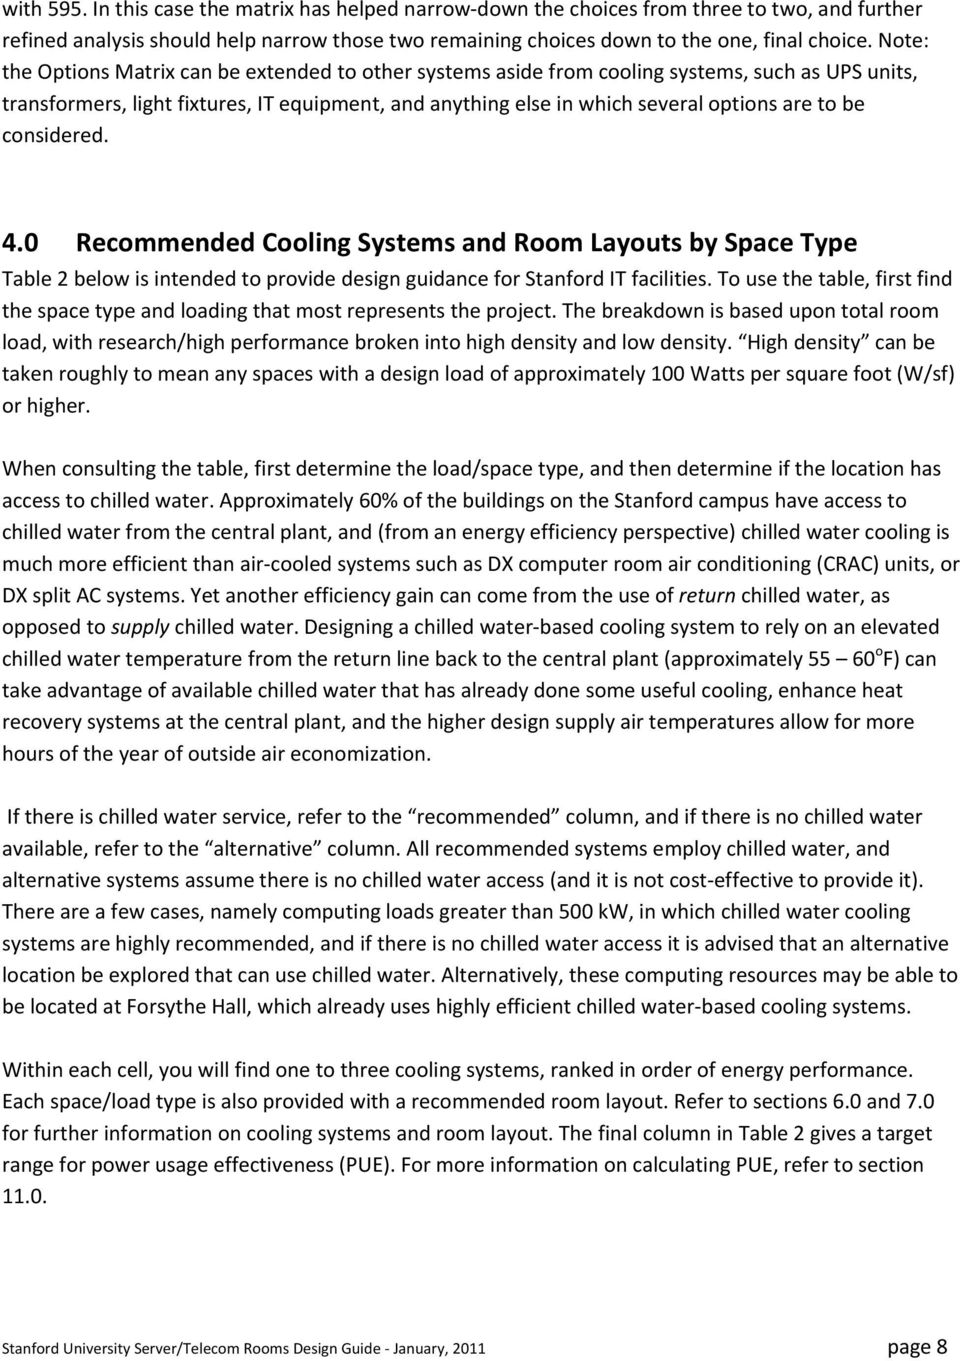 be considered. 4.0 Recommended Cooling Systems and Room Layouts by Space Type Table 2 below is intended to provide design guidance for Stanford IT facilities.